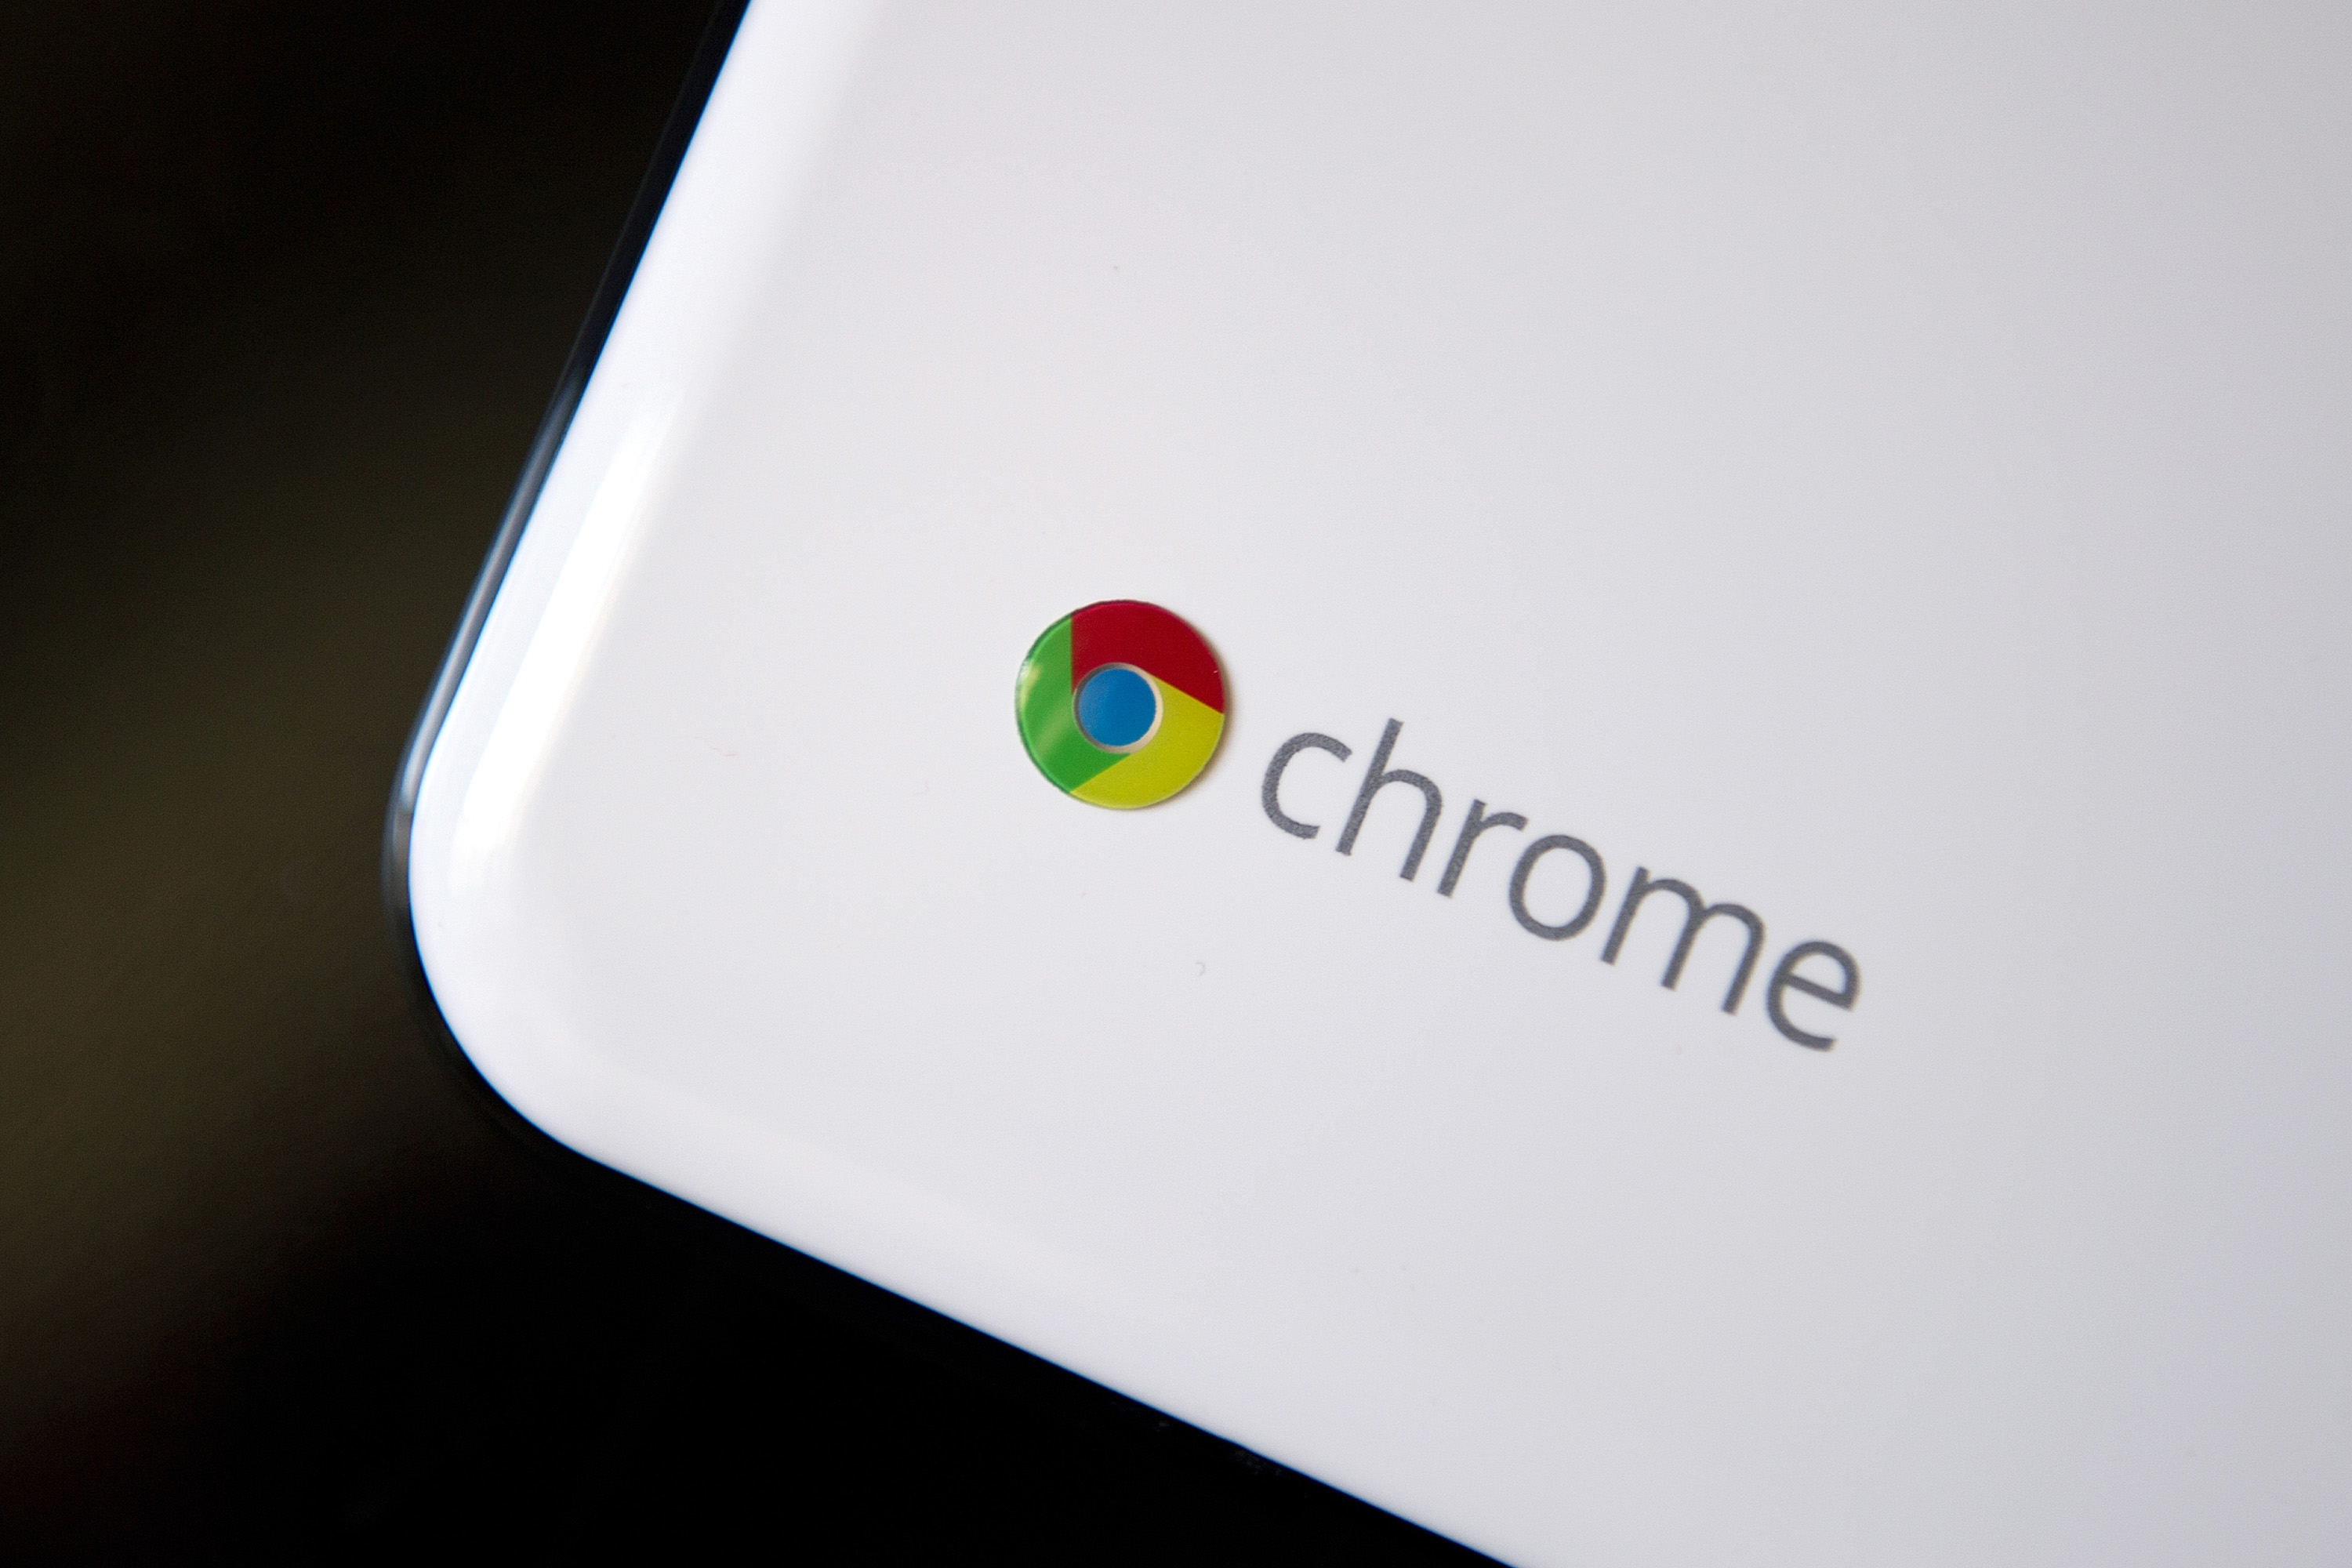 Google Inc. Chrome's logo is seen on a Chromebook in San Francisco, California, U.S., on Thursday, June 9, 2011.